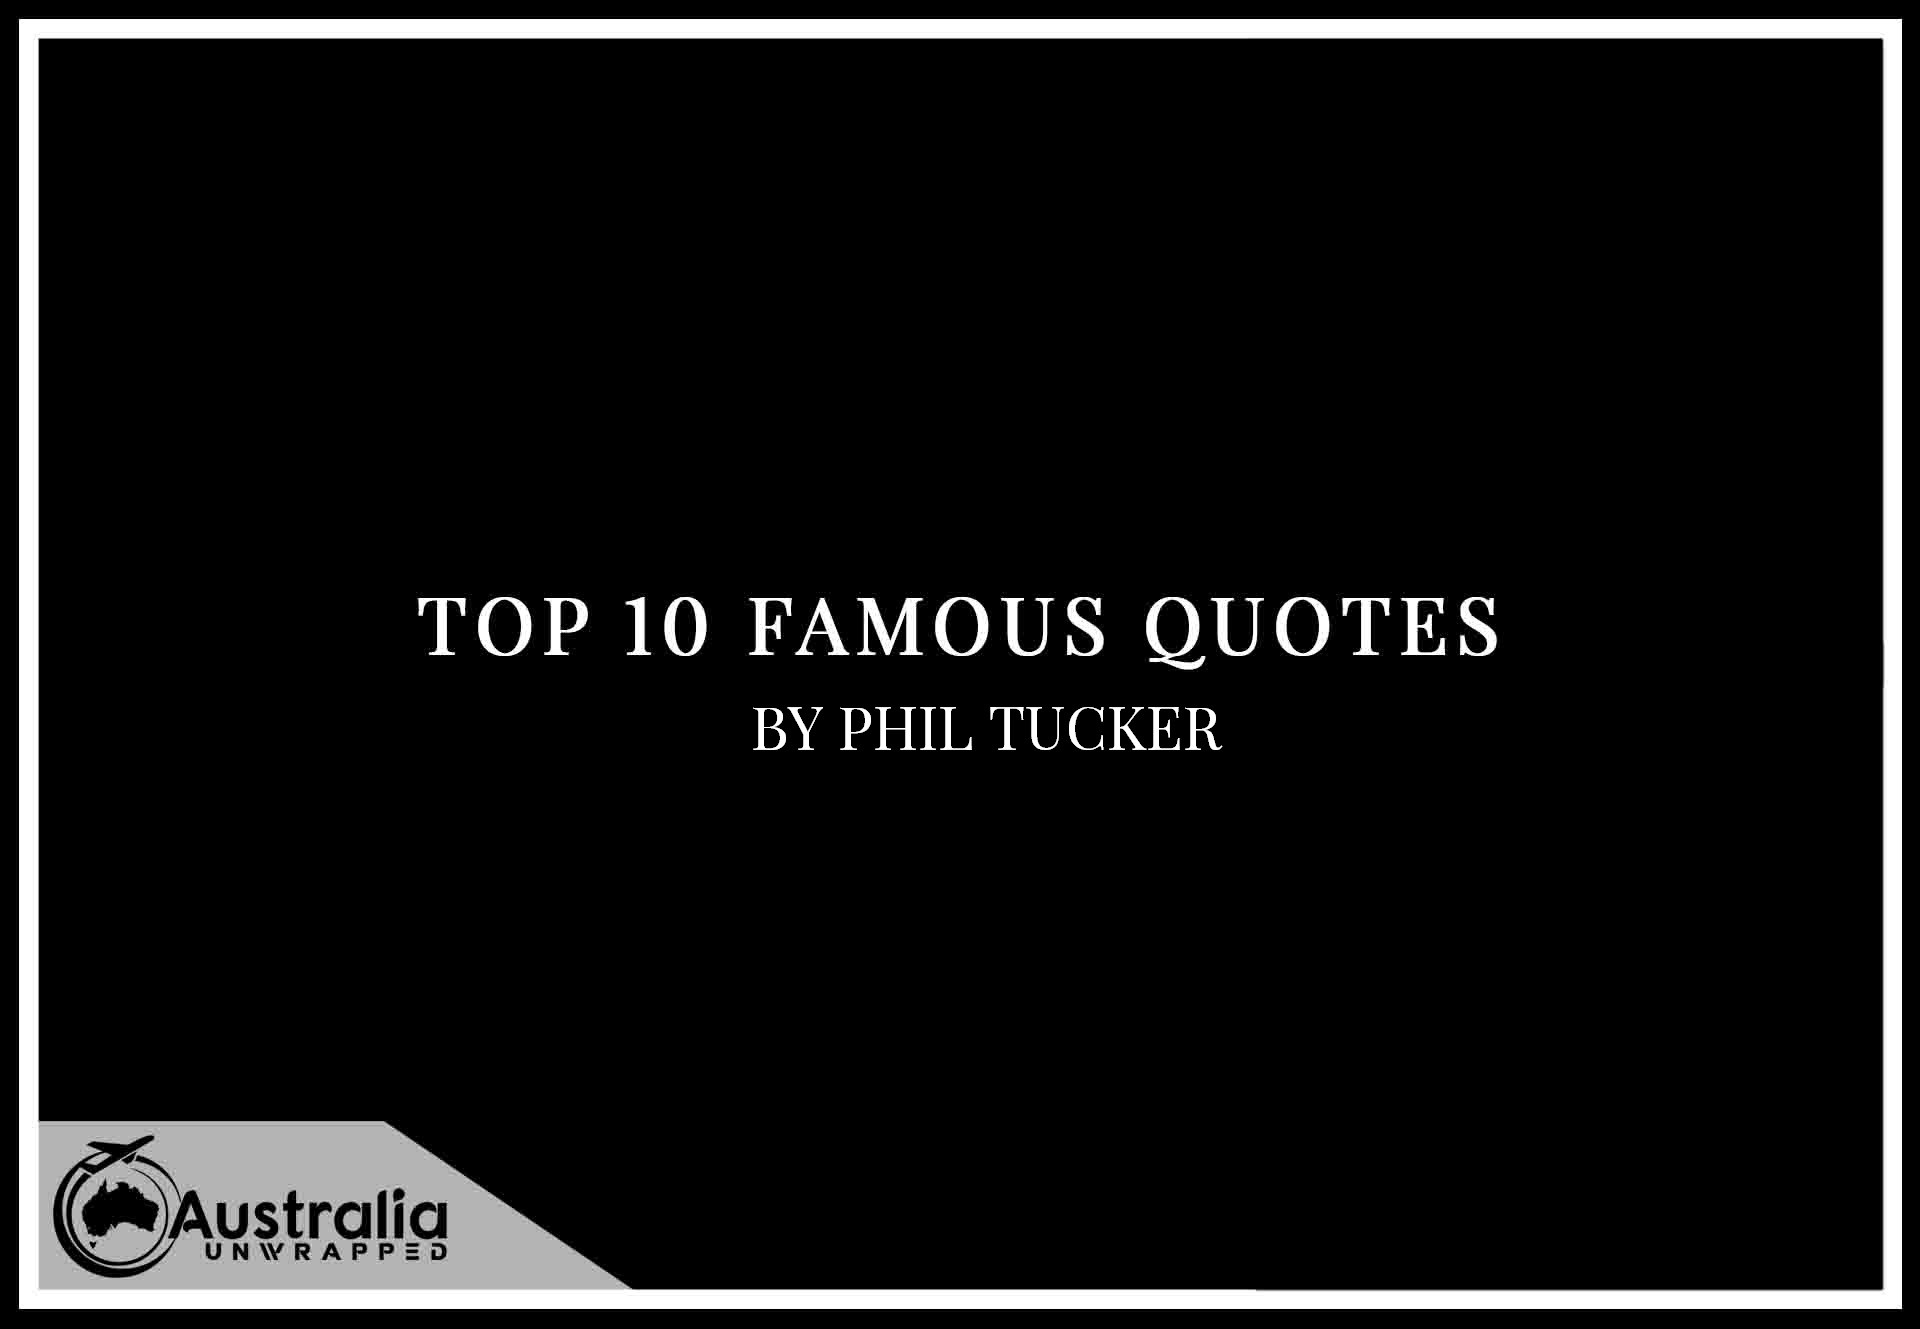 Top 10 Famous Quotes by Author Phil Tucker